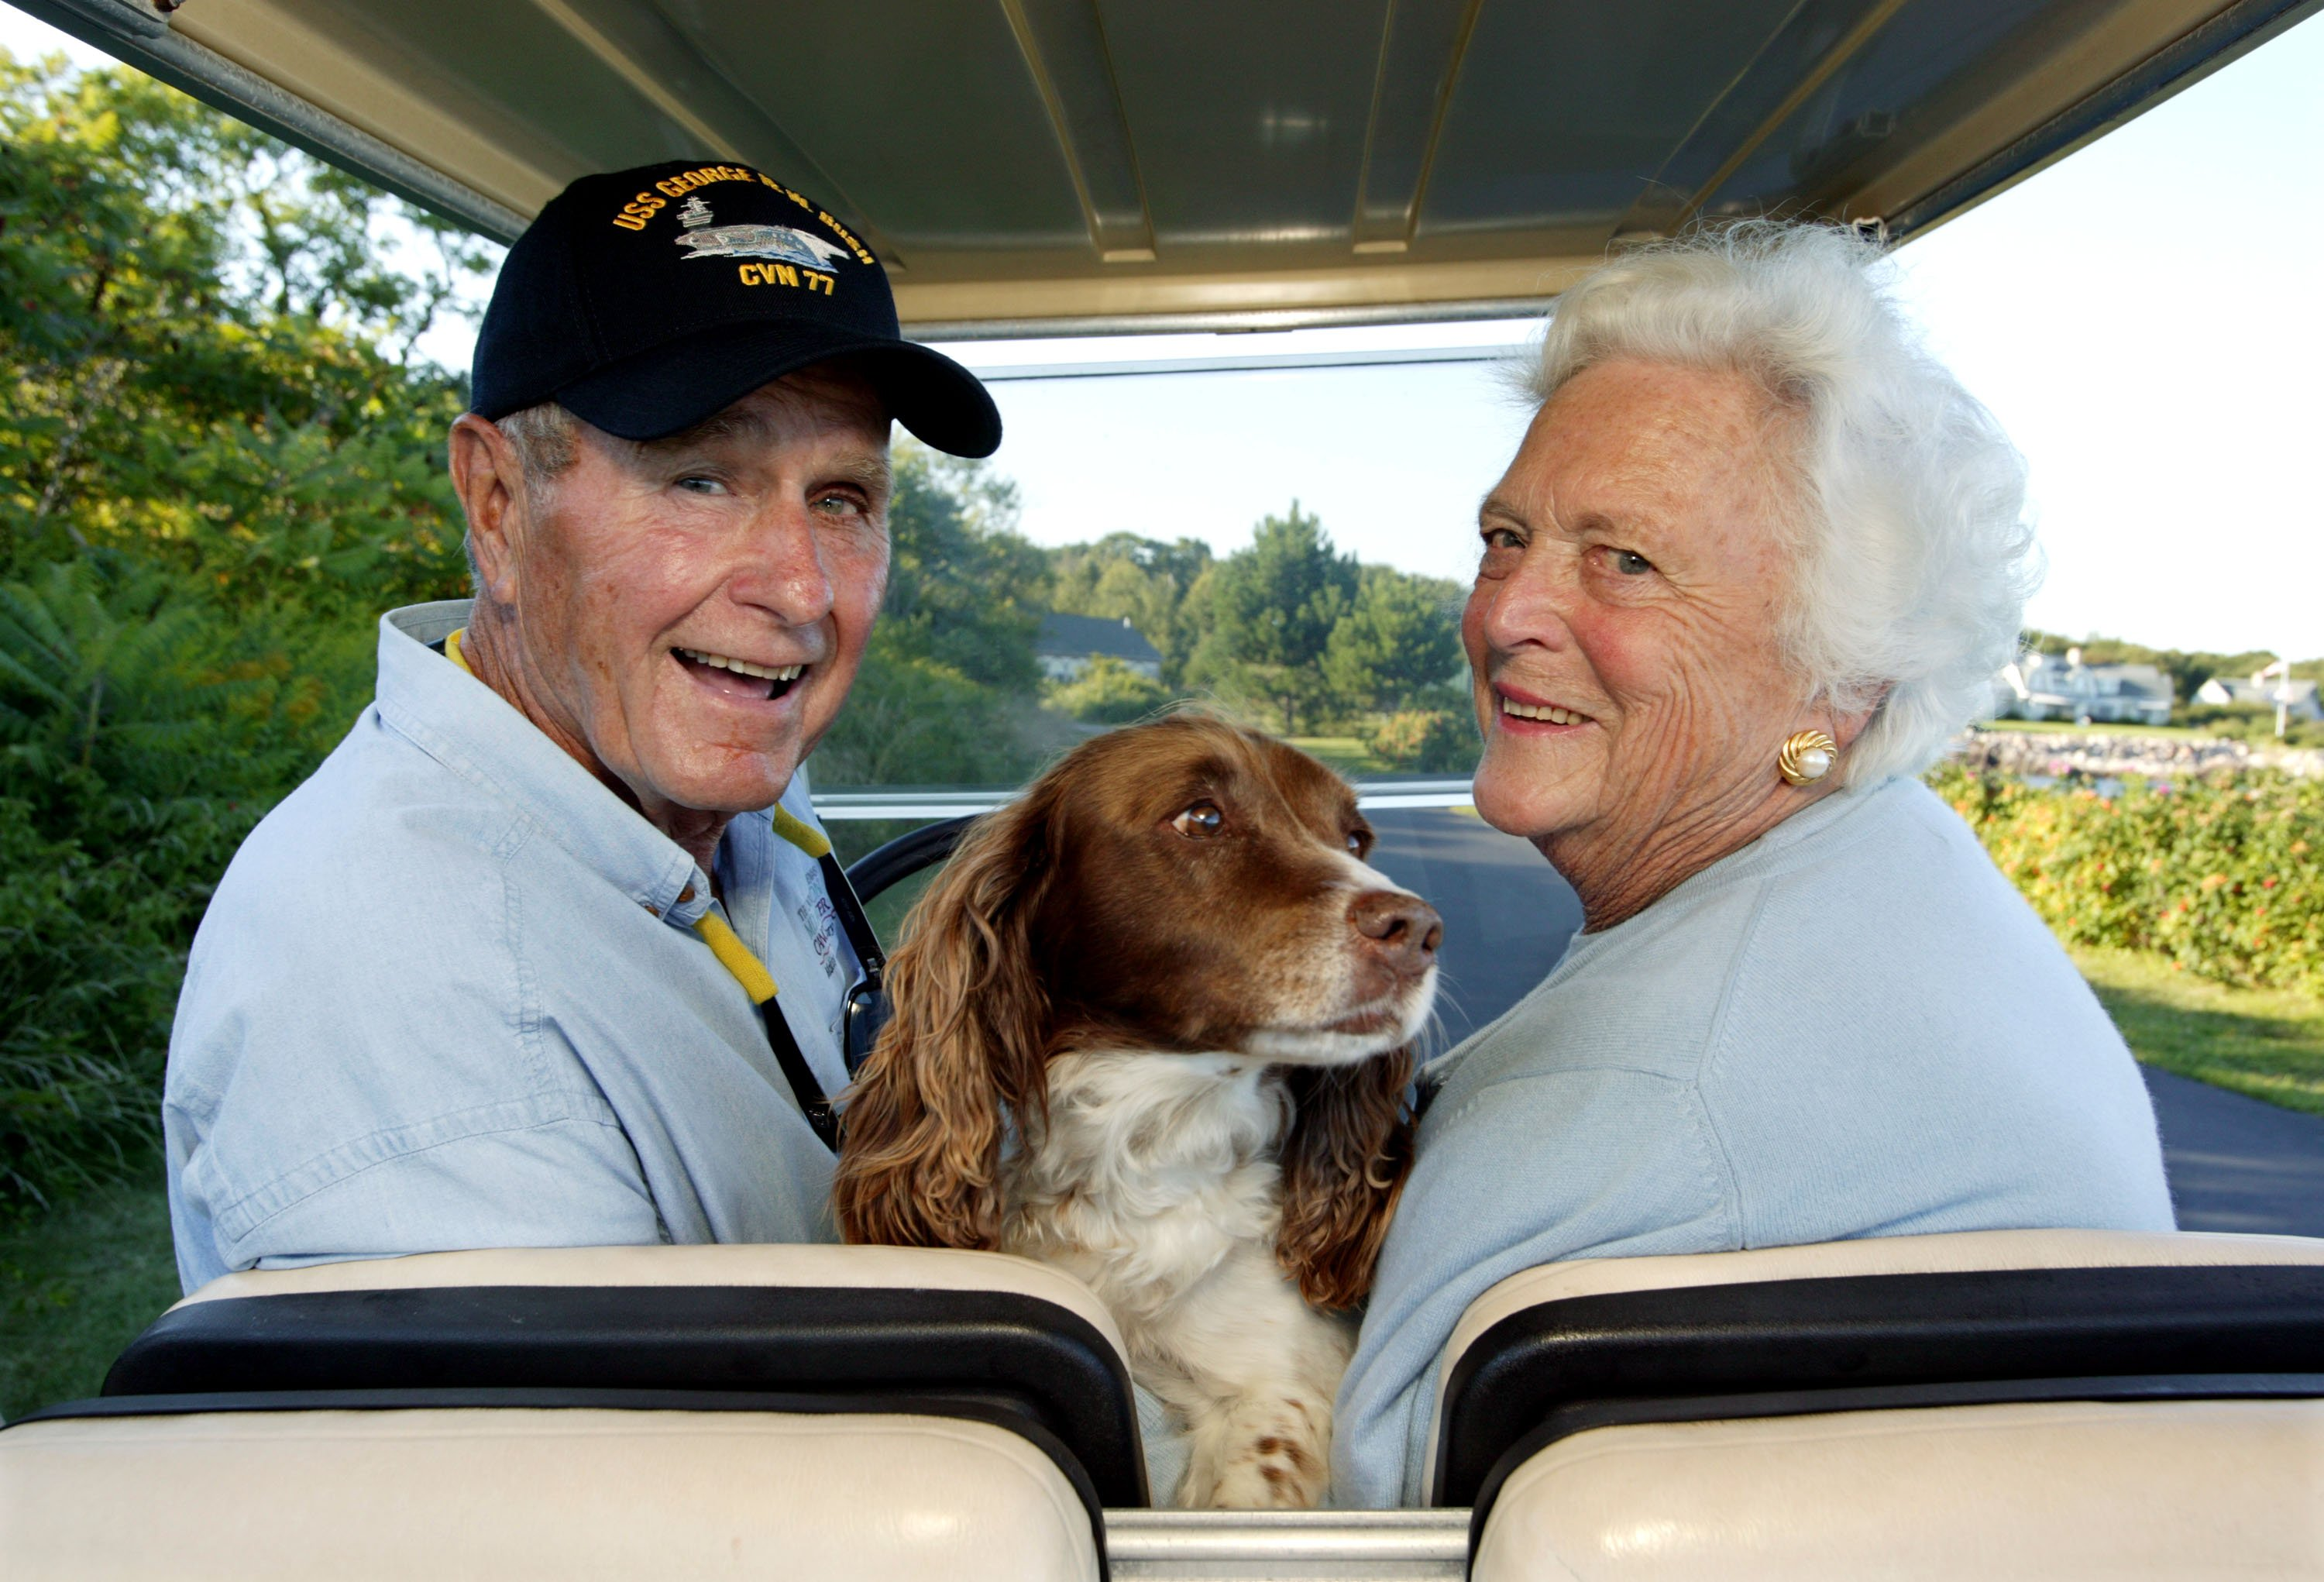 Former U.S. president George H. W. Bush and wife, Barbara Bush, cruise in the back of a golf cart with their dog Millie at their home at Walker's Point August 25, 2004 in Kennebunkport, Maine.  Source: Getty Images